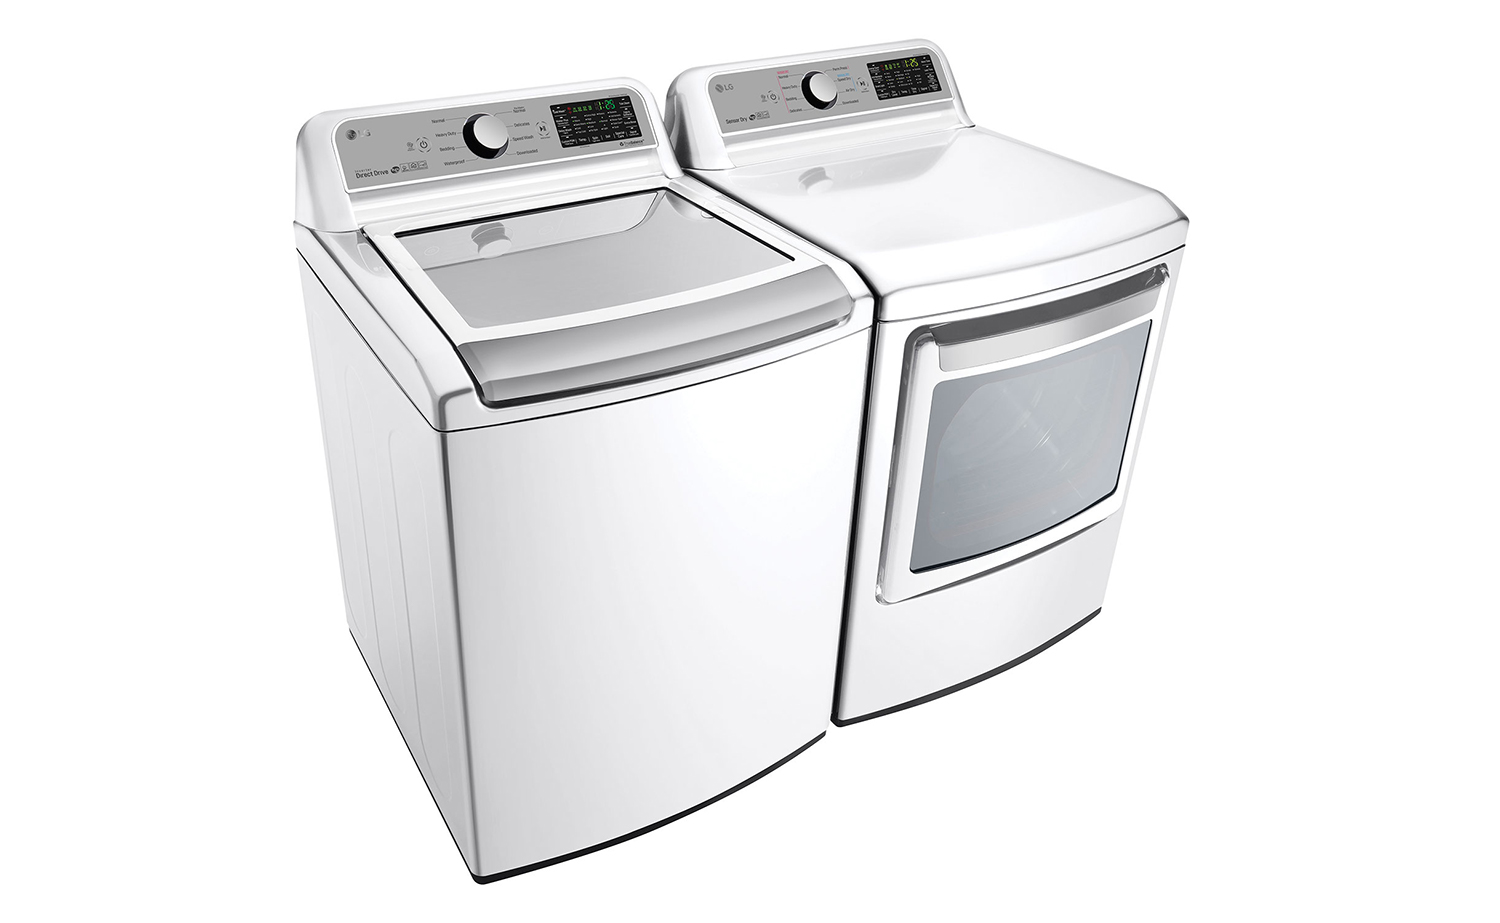 LG SmartThinQ Laundry Machines Overview | Best Buy Blog